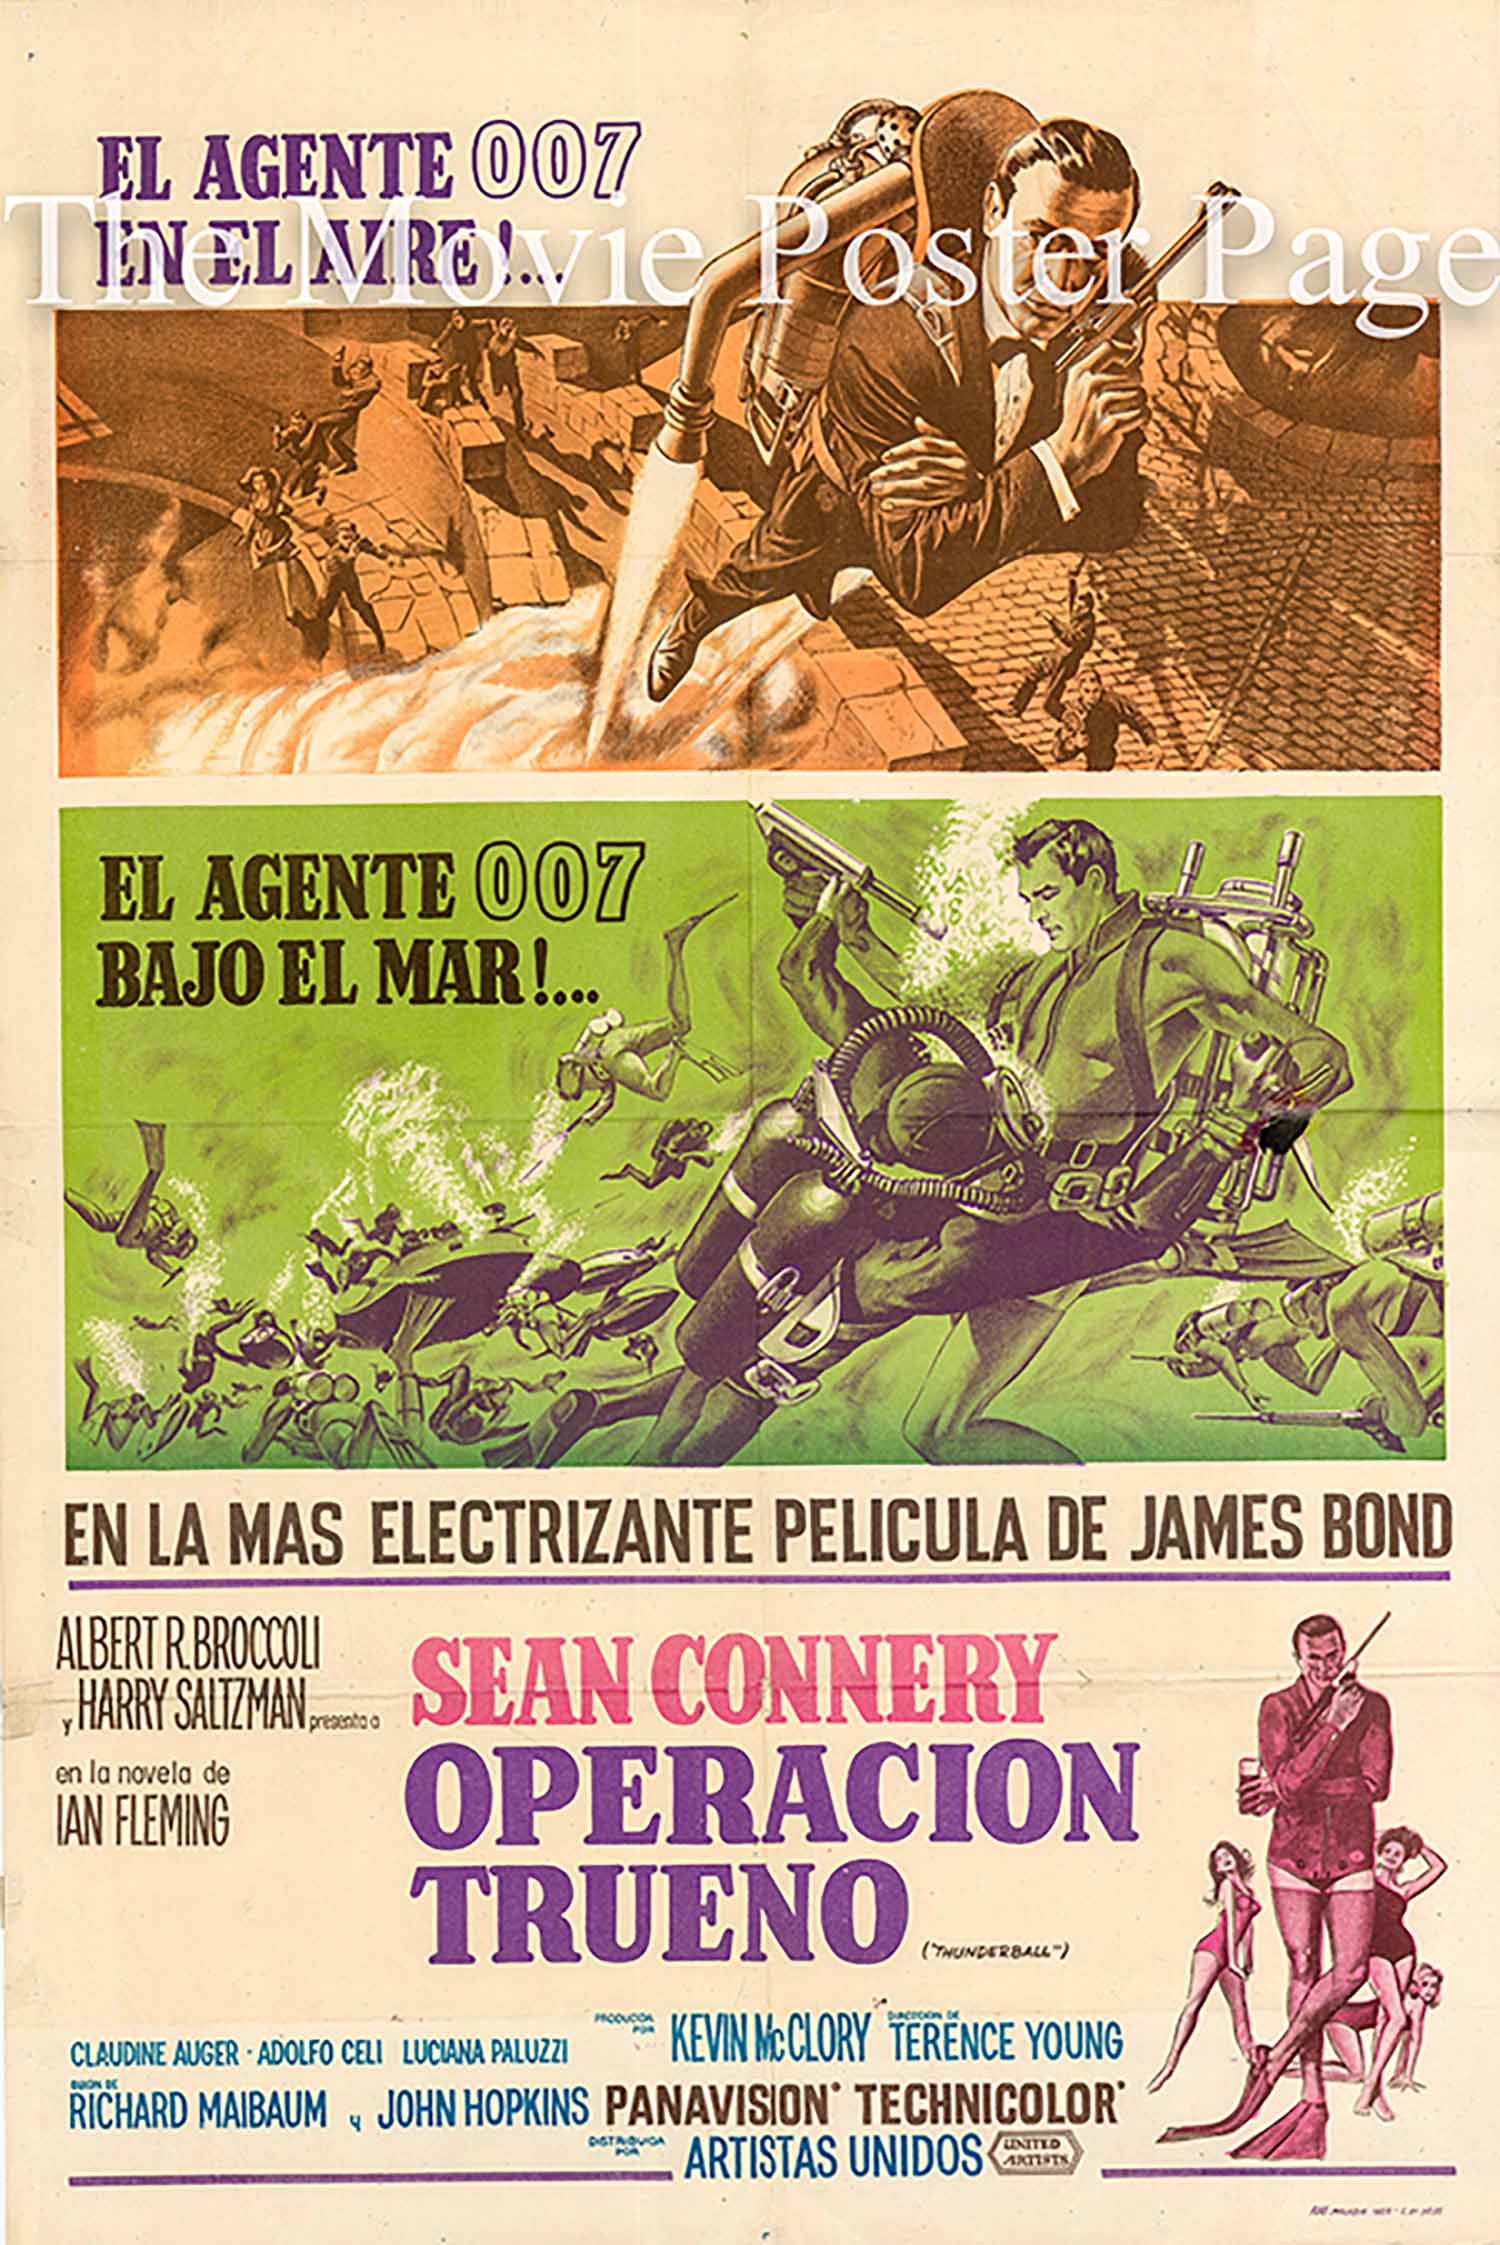 Pictured is an A rgentine promotional poster for the 1965 Terence Young film Thunderball starring Sean Connery as James Bond.